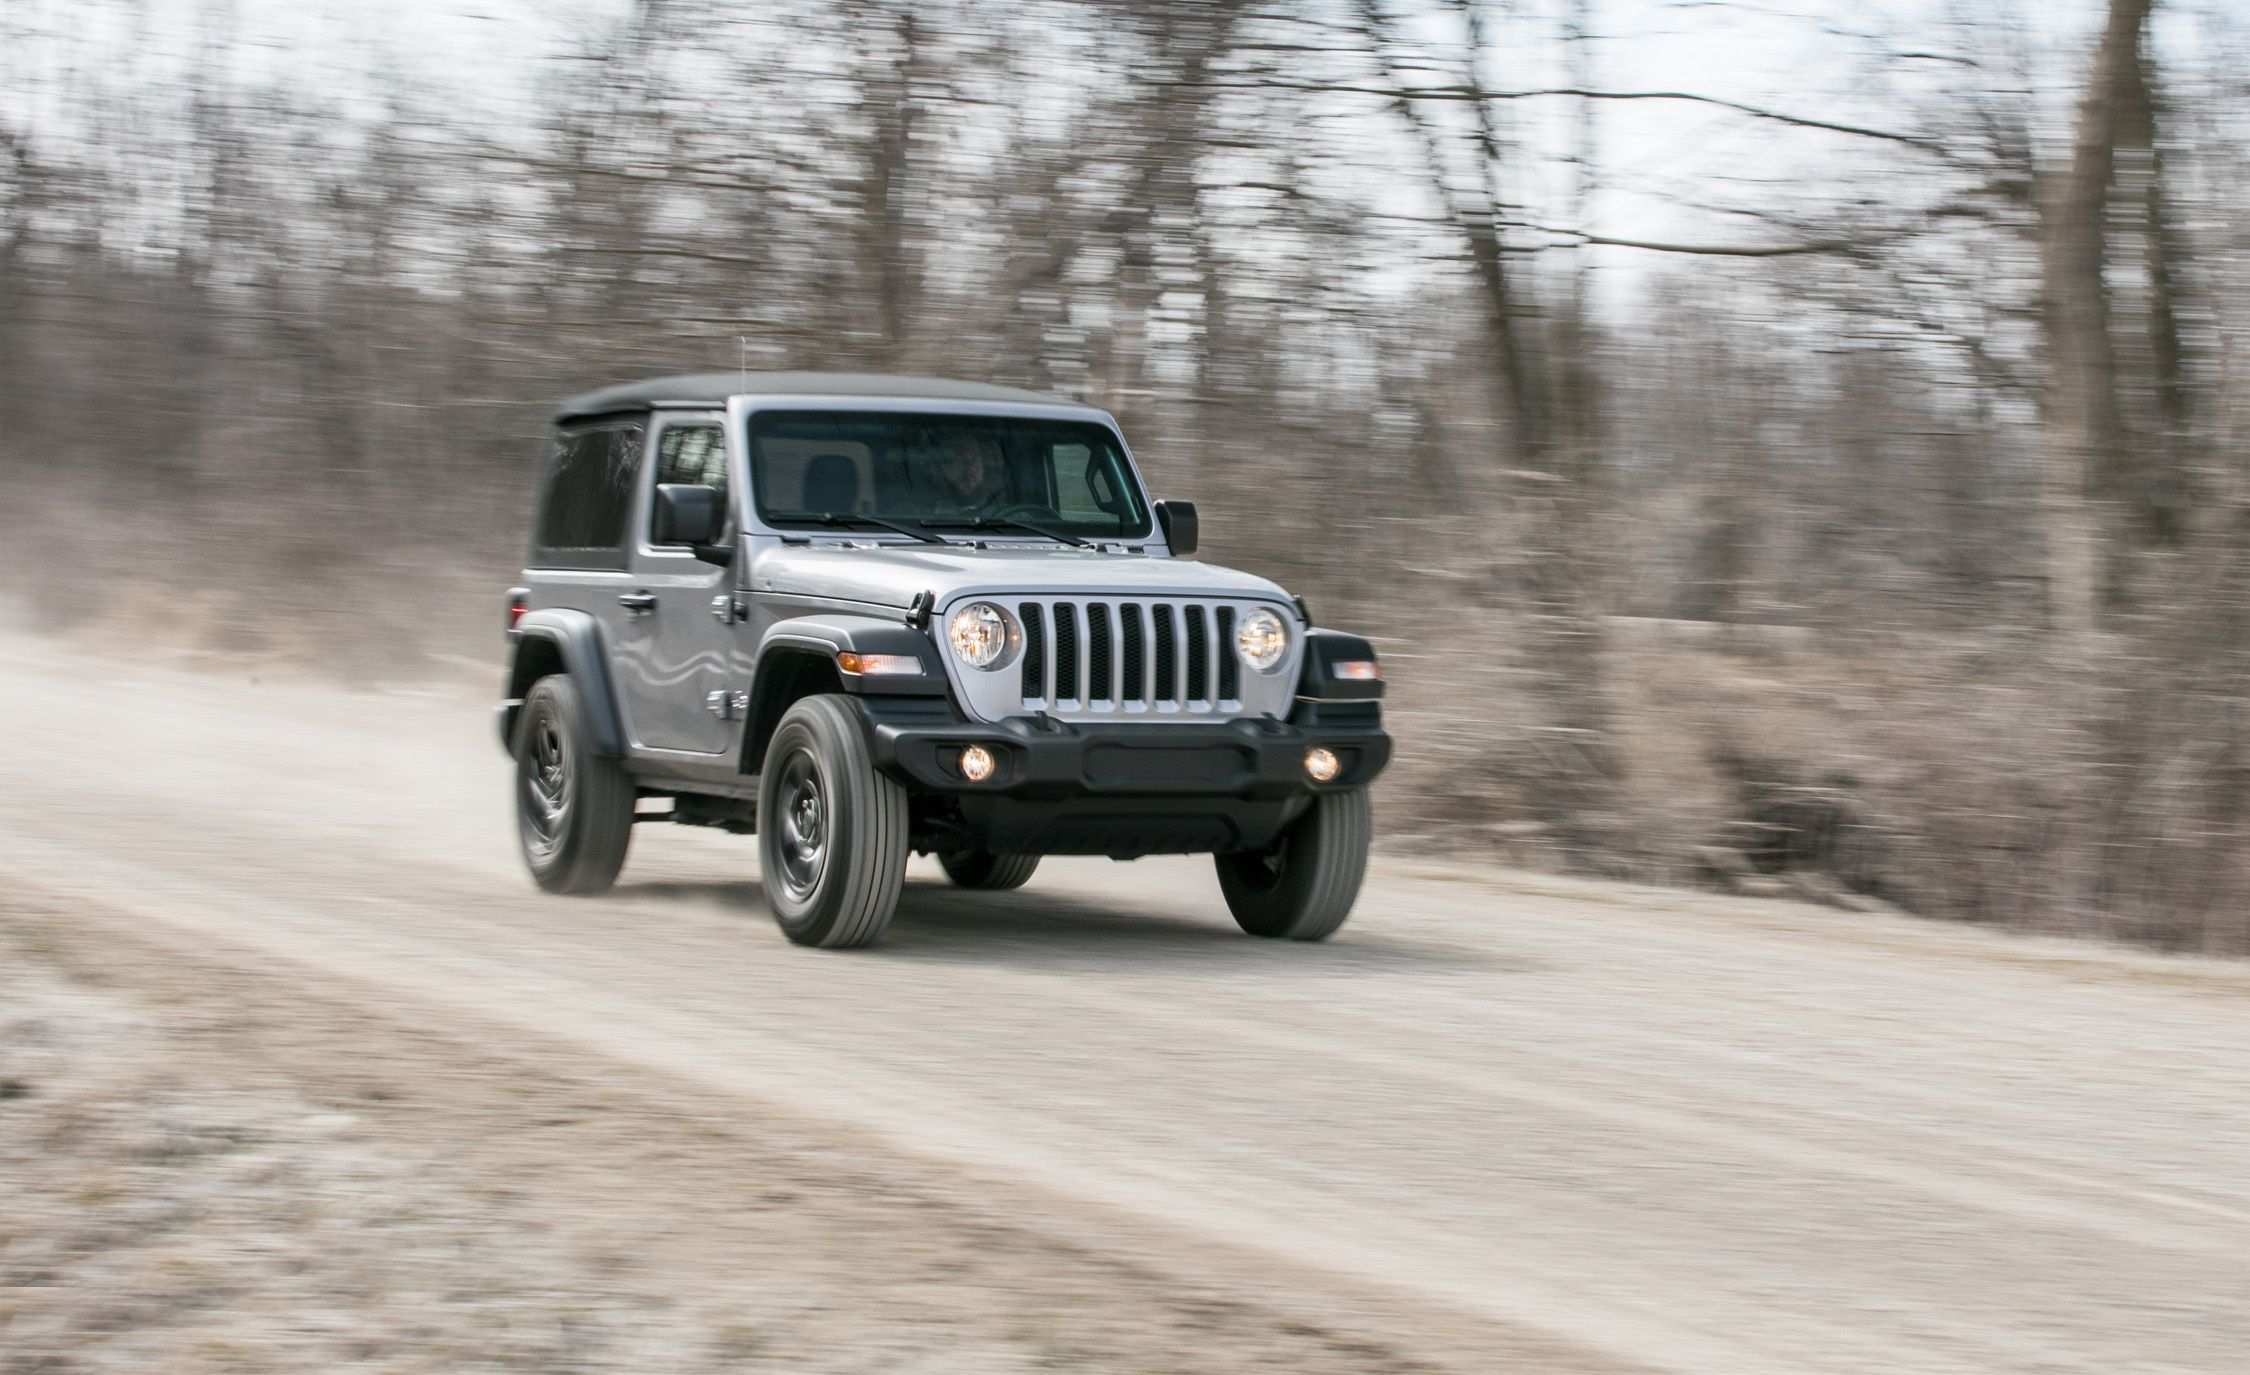 91 Great Best Jeep 2019 Jk Specs And Review Engine with Best Jeep 2019 Jk Specs And Review